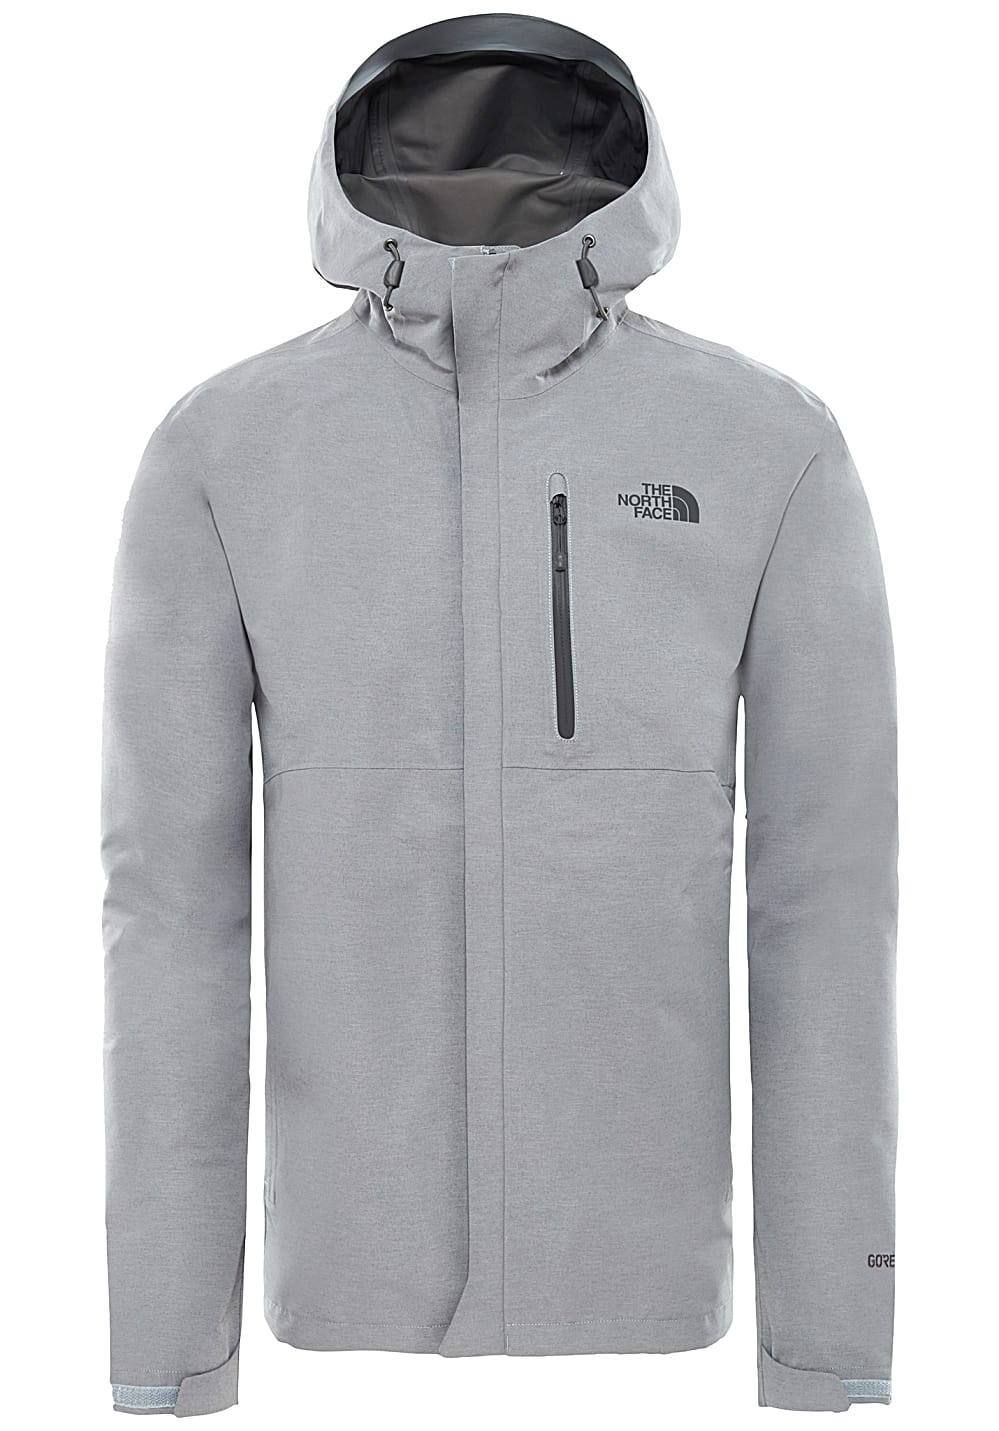 on sale 18f83 11b70 THE NORTH FACE Dryzzle - Jacke für Herren - Grau